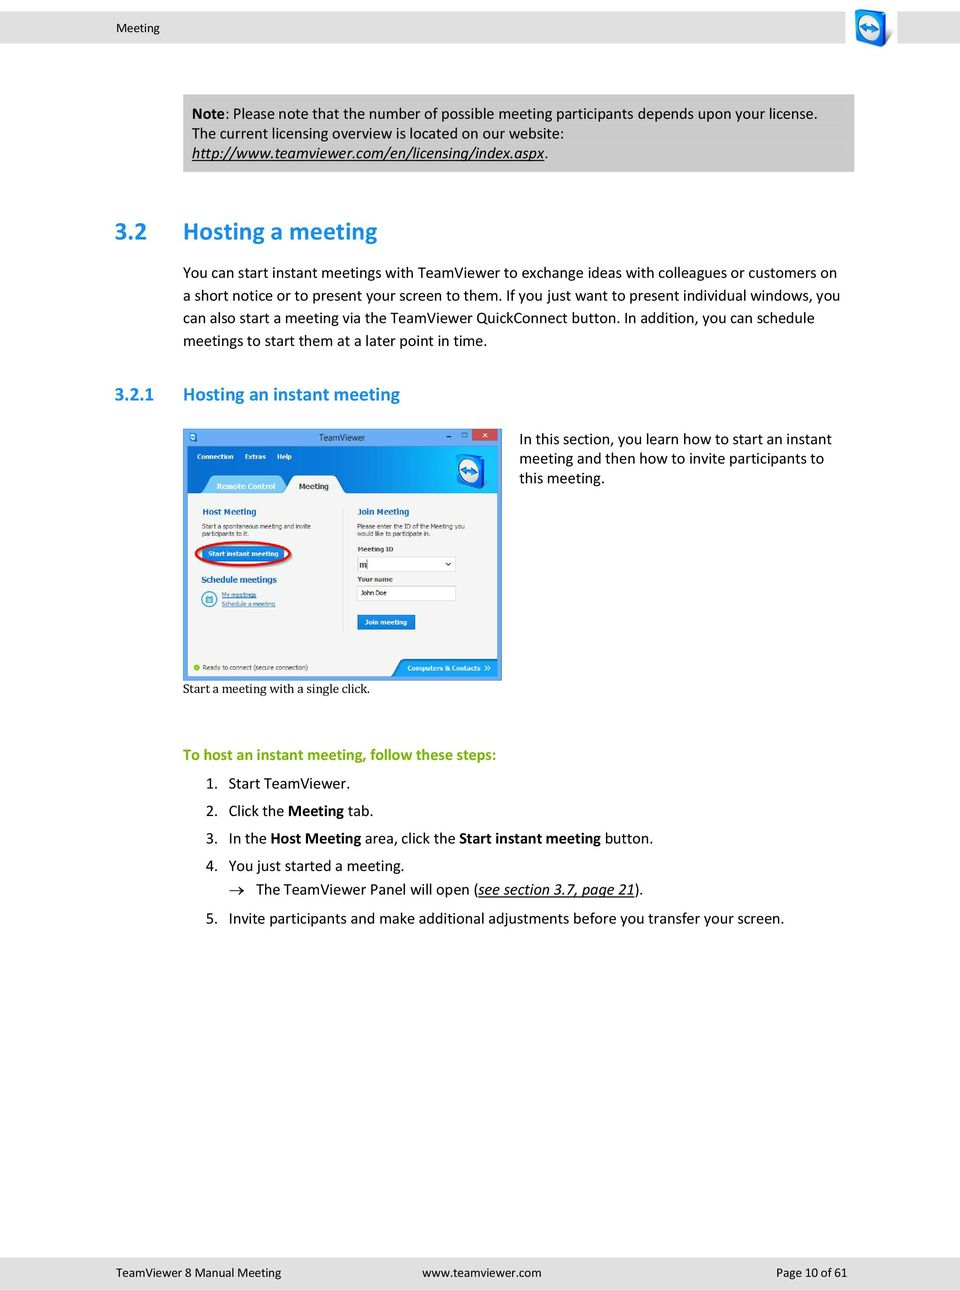 If you just want to present individual windows, you can also start a meeting via the TeamViewer QuickConnect button. In addition, you can schedule meetings to start them at a later point in time. 3.2.